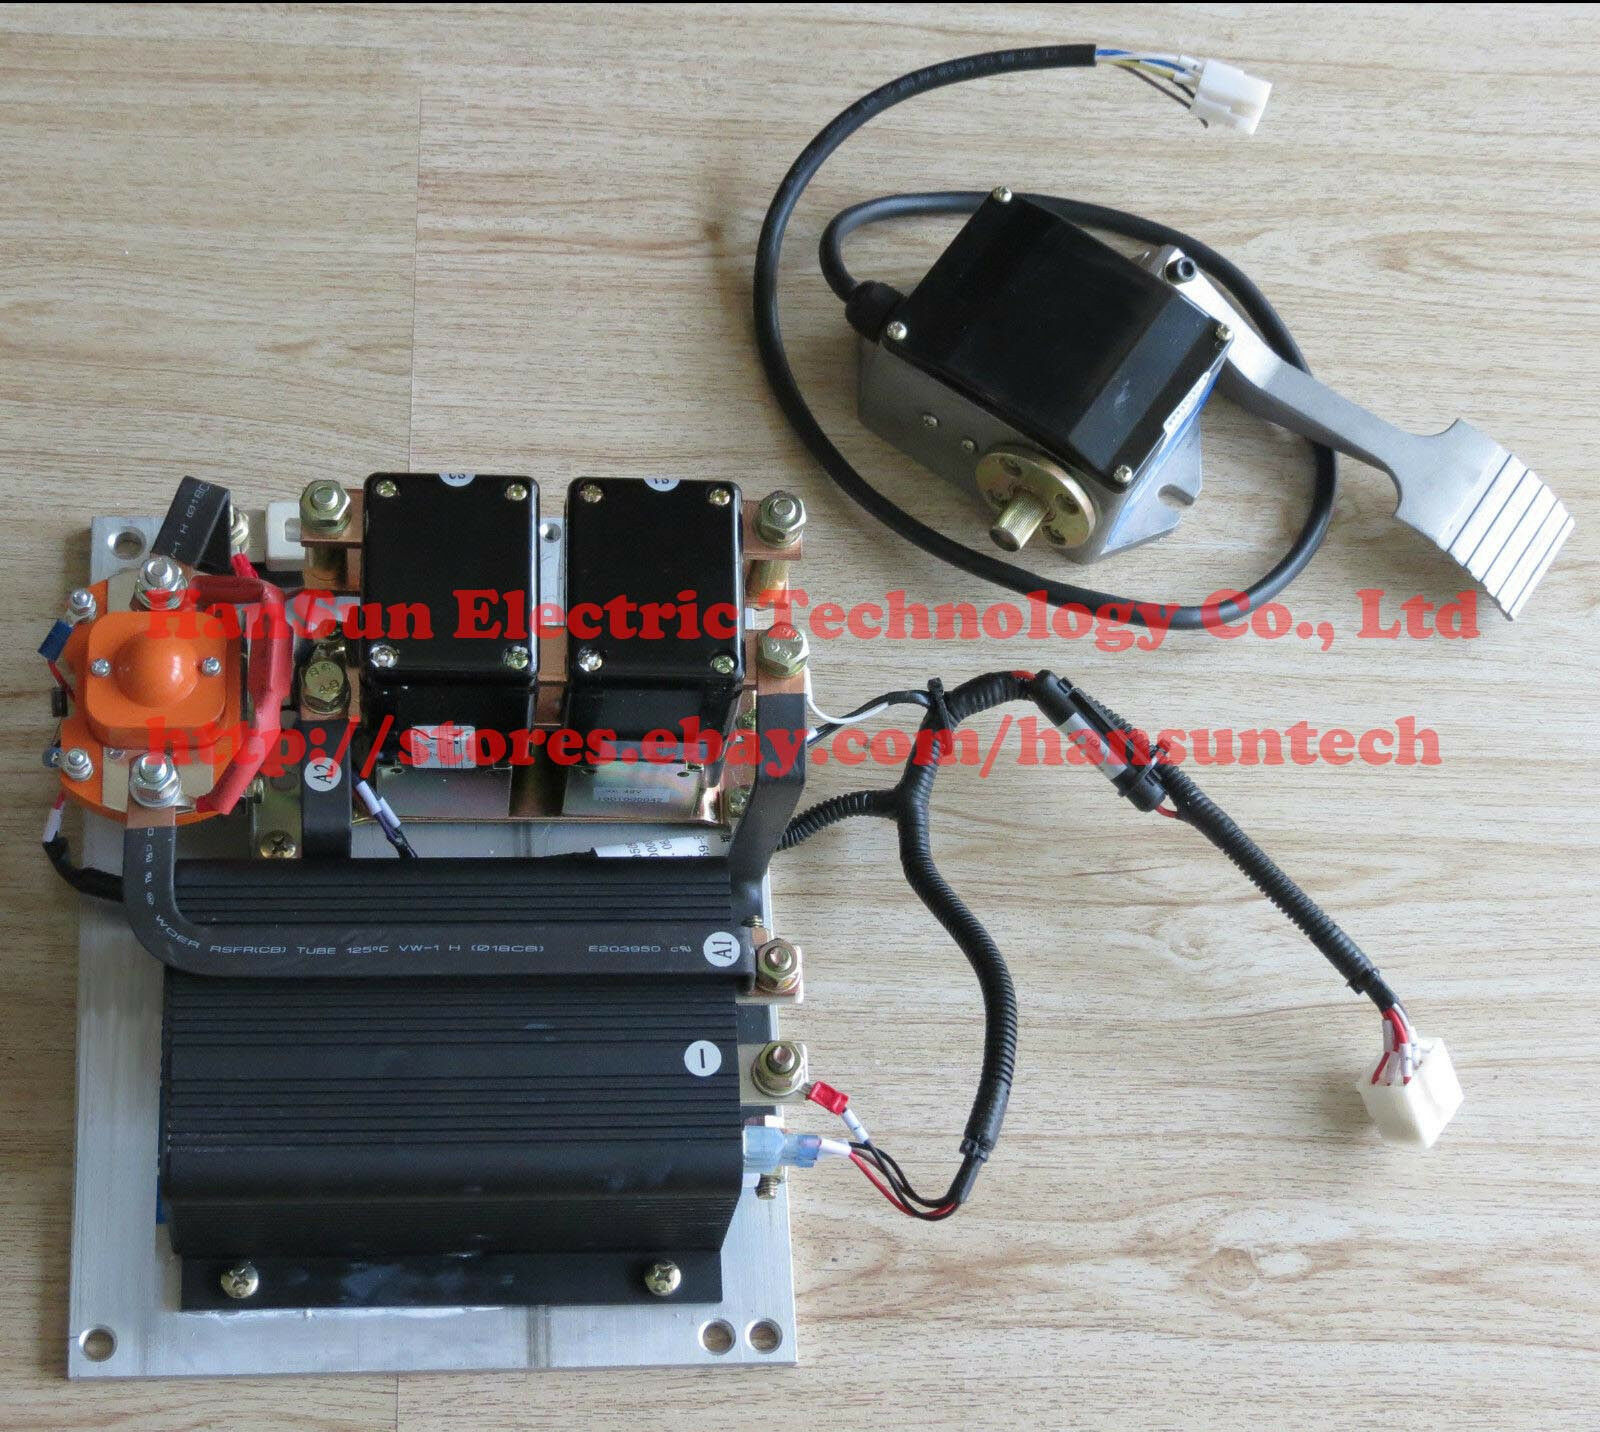 Curtis 36v 48v 1205m 5603 500a Controller Assemblage With Foot Wiring Diagram 48 Volt Golf Cart 1 Of 10only Available